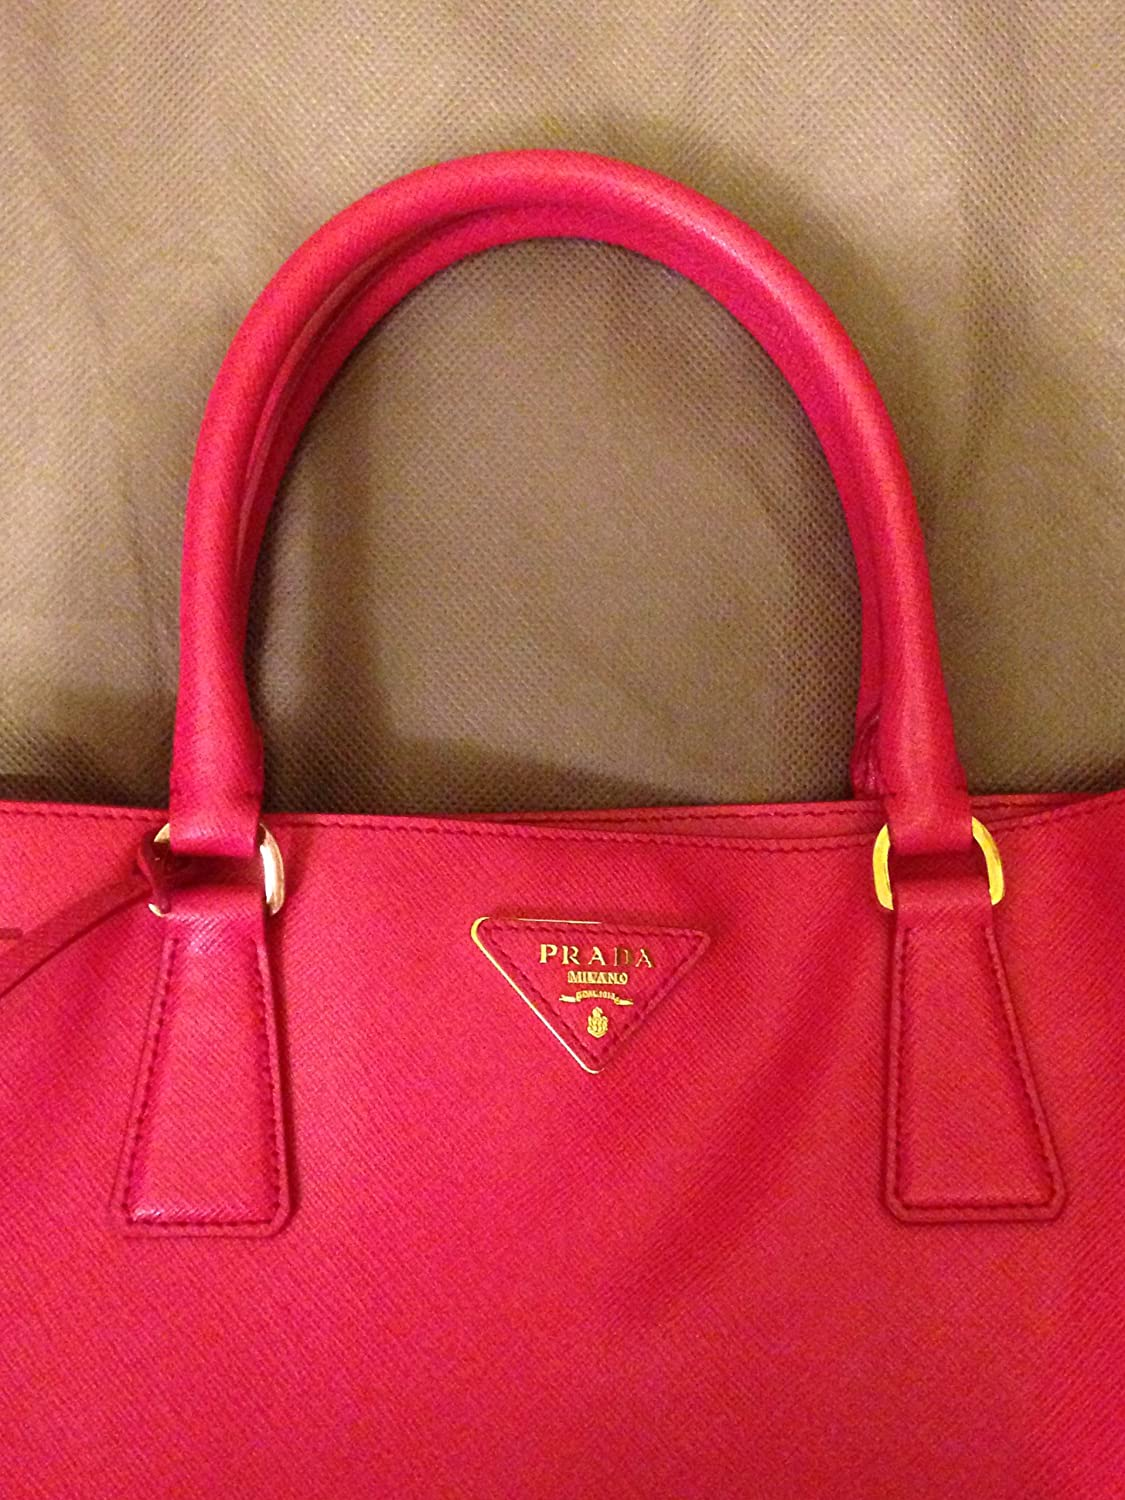 Amazon.com   Prada Pink Saffiano Lux Leather Tote Bag Bn1844 Size Tu   Cosmetic  Tote Bags   Beauty 9f21ad5d6b63e